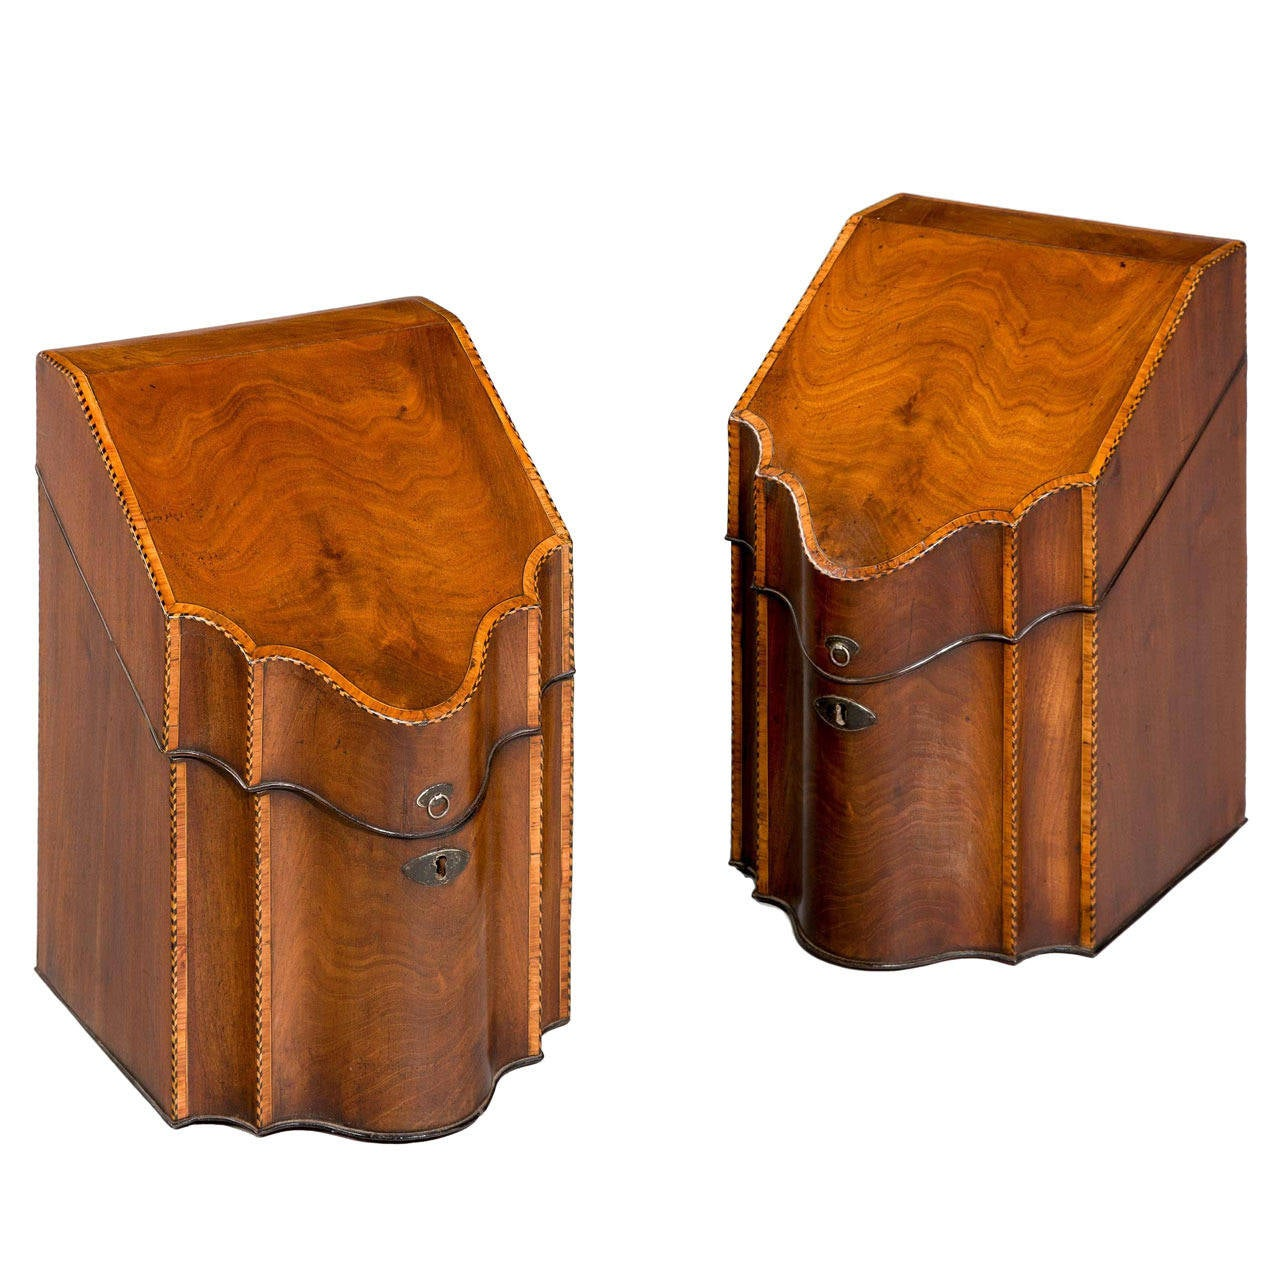 Pair of George lll Period Knife Boxes